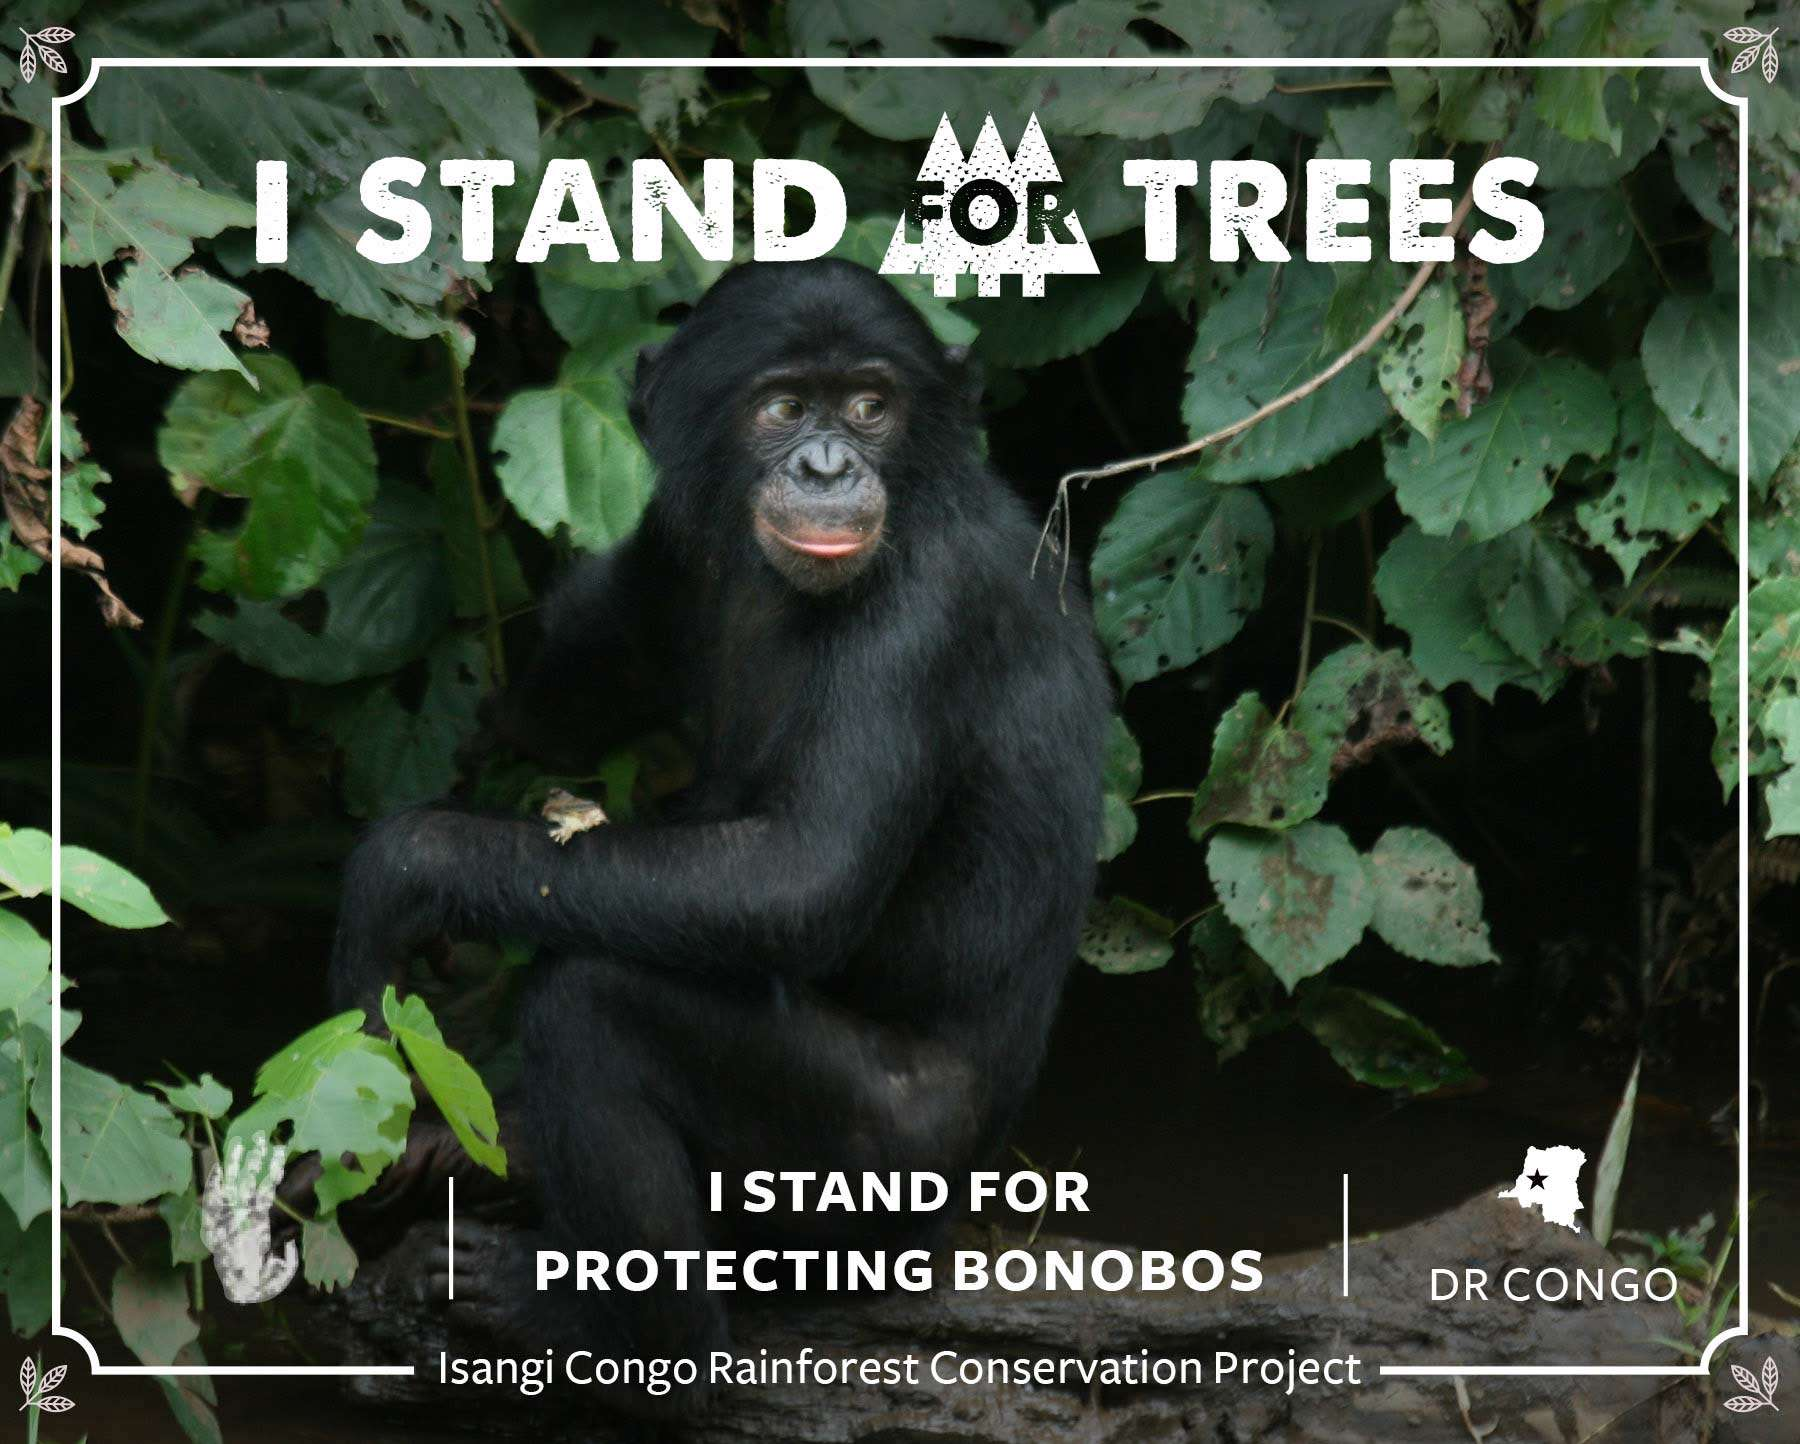 I Stand for Trees contributor certificate